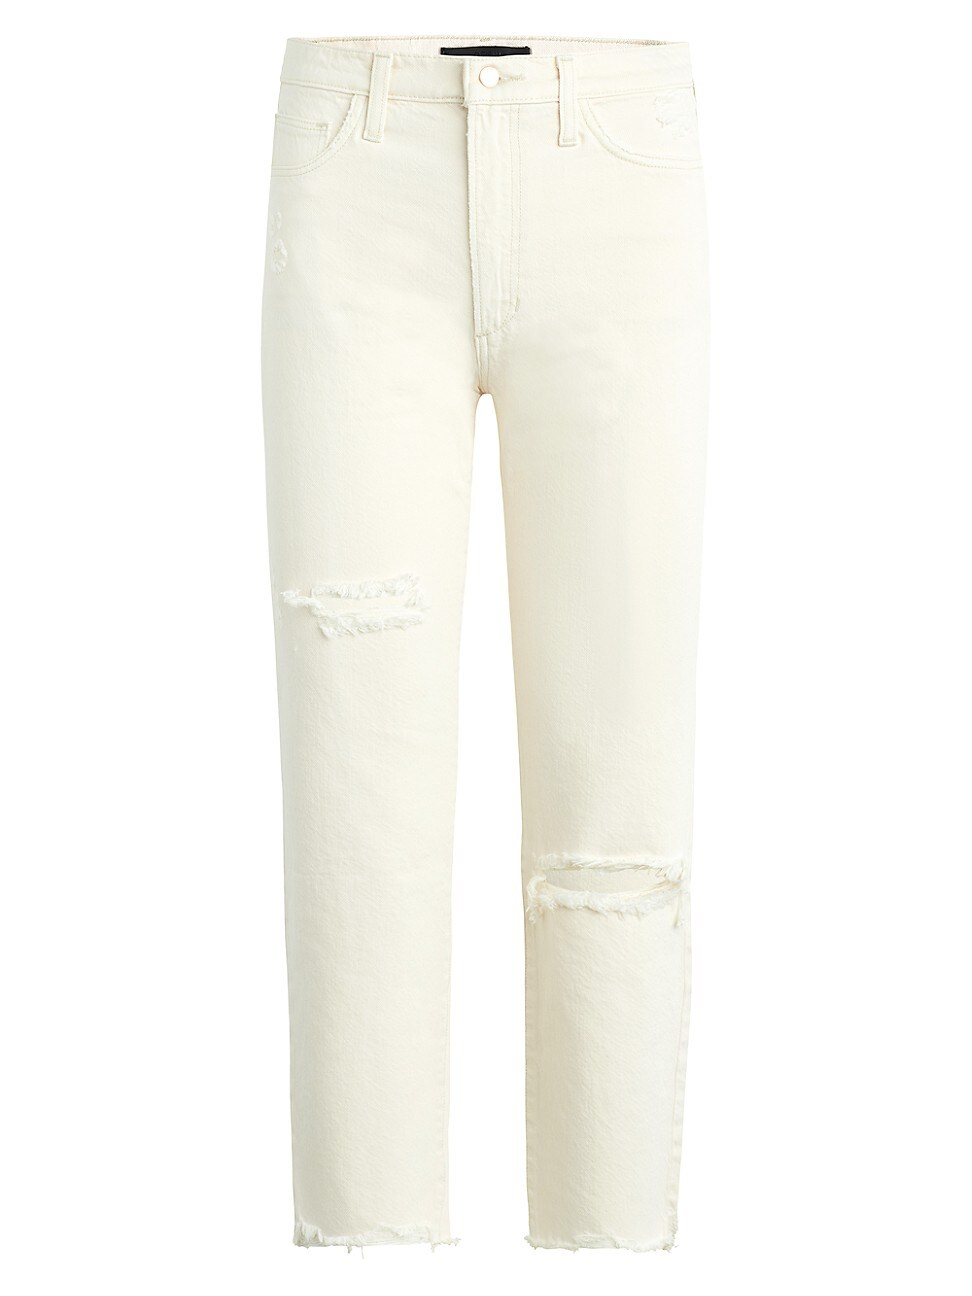 Joe's Jeans WOMEN'S THE HONOR FRAYED JEANS